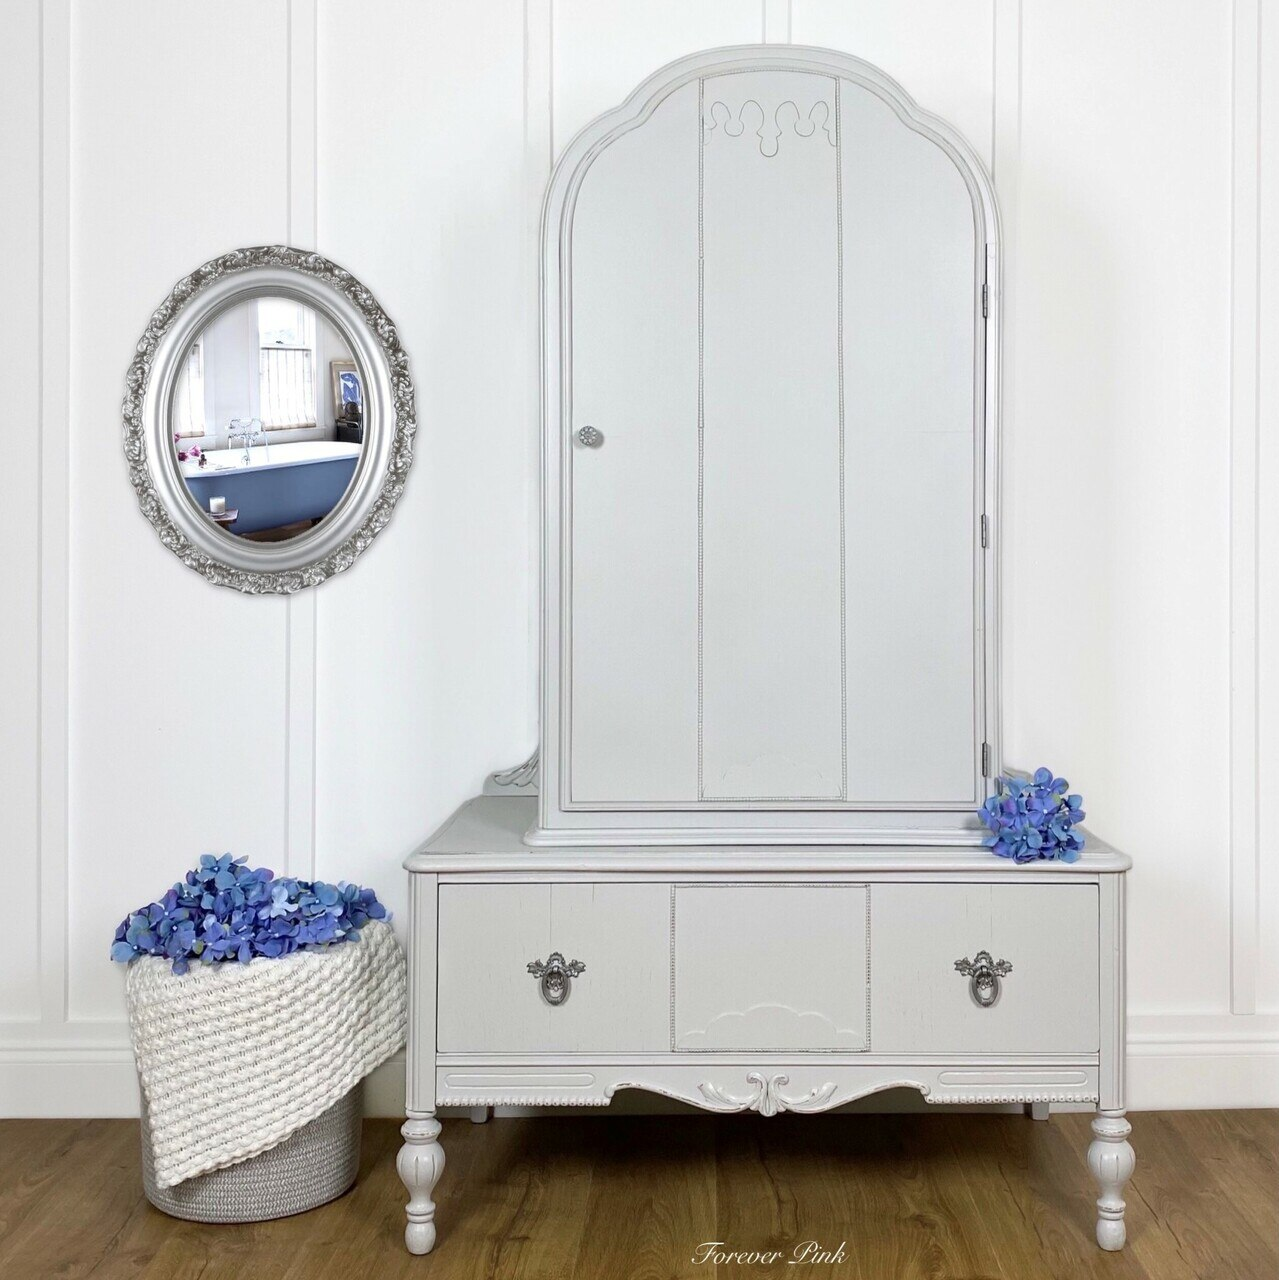 A wooden cabinet painted in the Country Chic Paint pale grey color Lazy Linen.